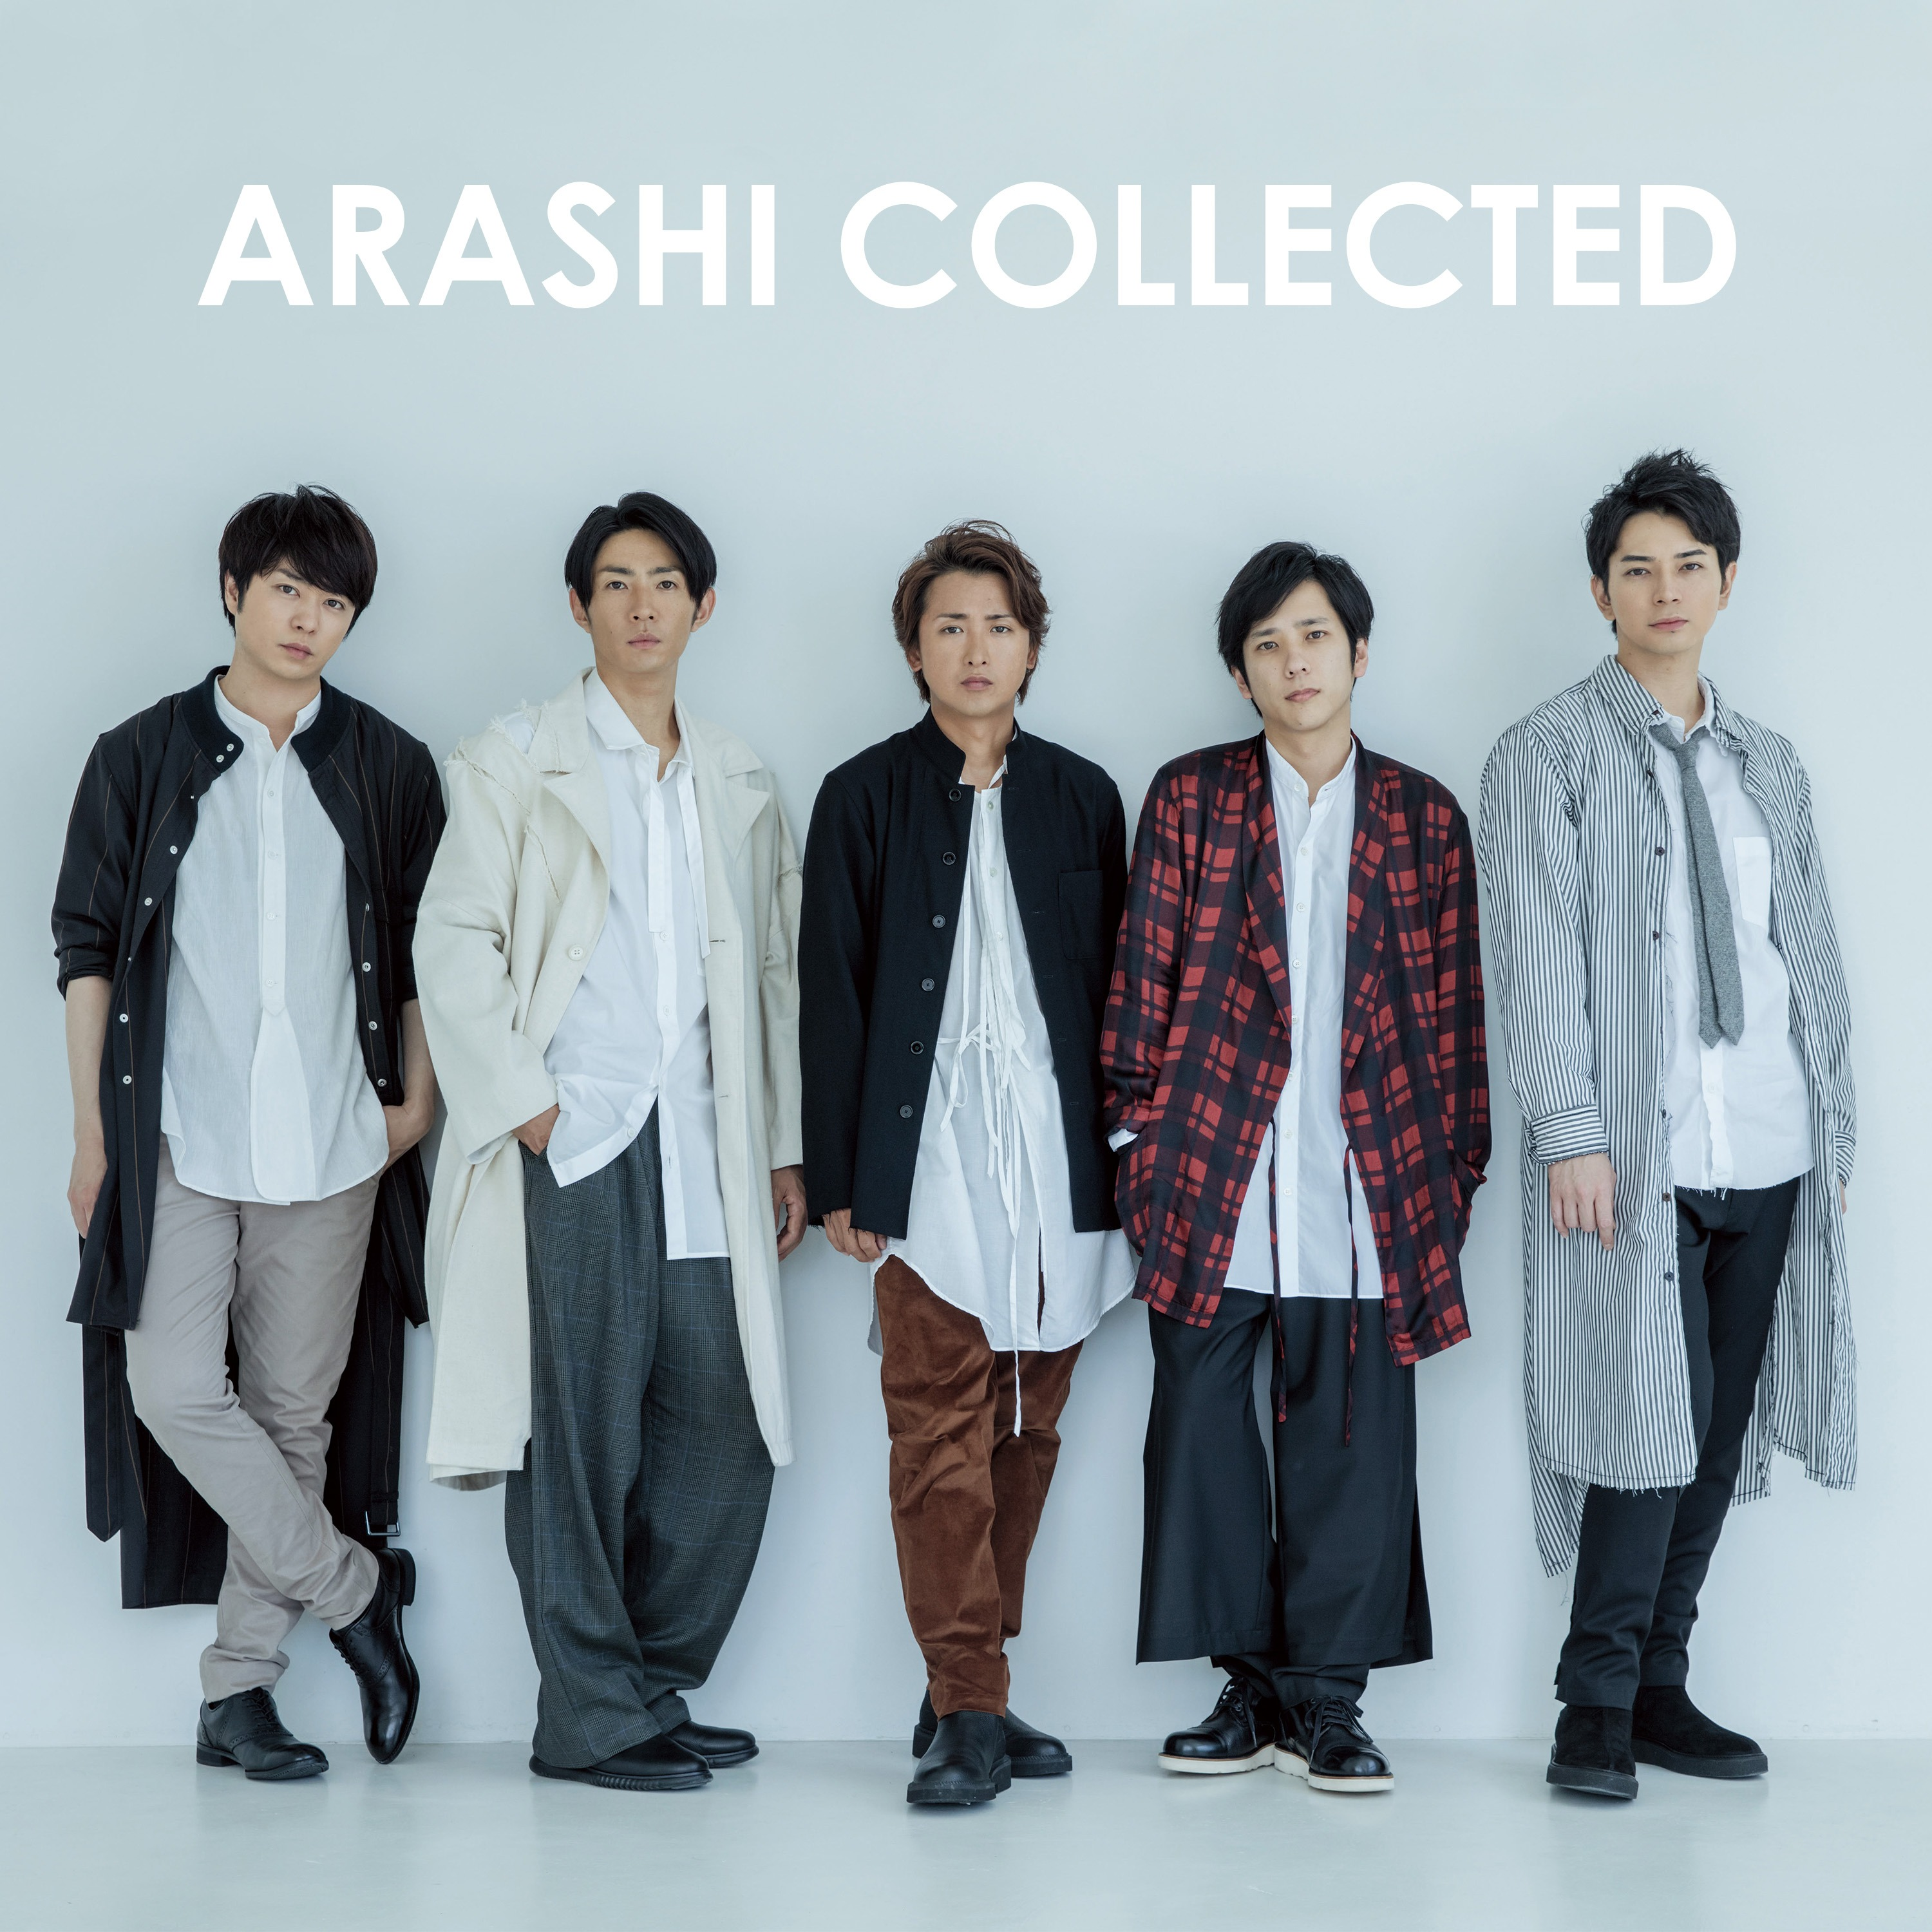 Listen to ARASHI COLLECTED on Spotify